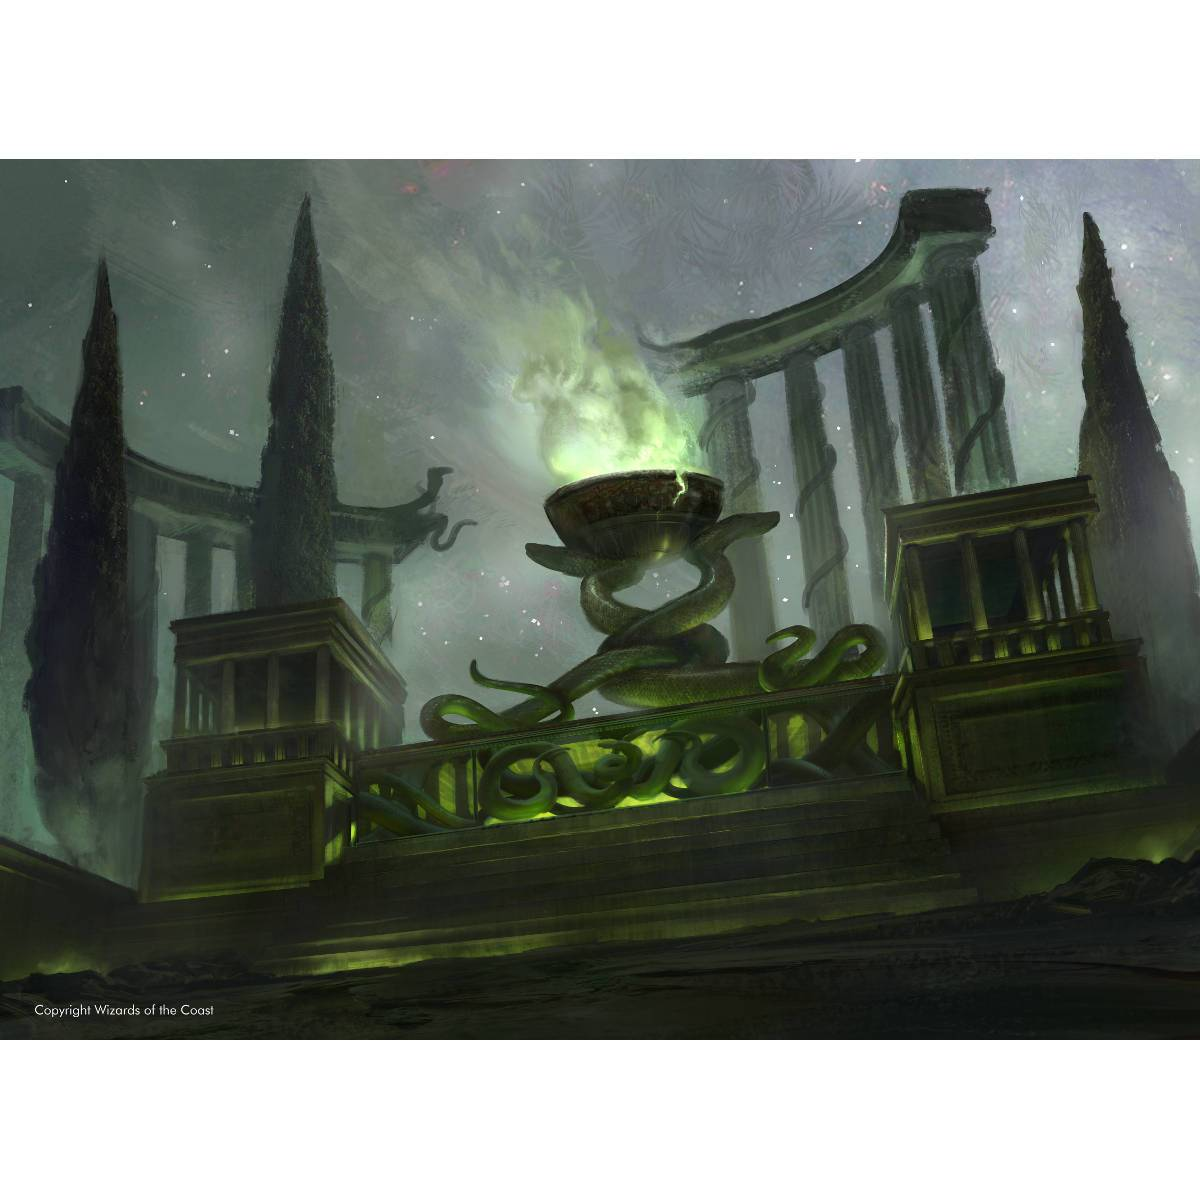 Temple of Malady Print - Print - Original Magic Art - Accessories for Magic the Gathering and other card games